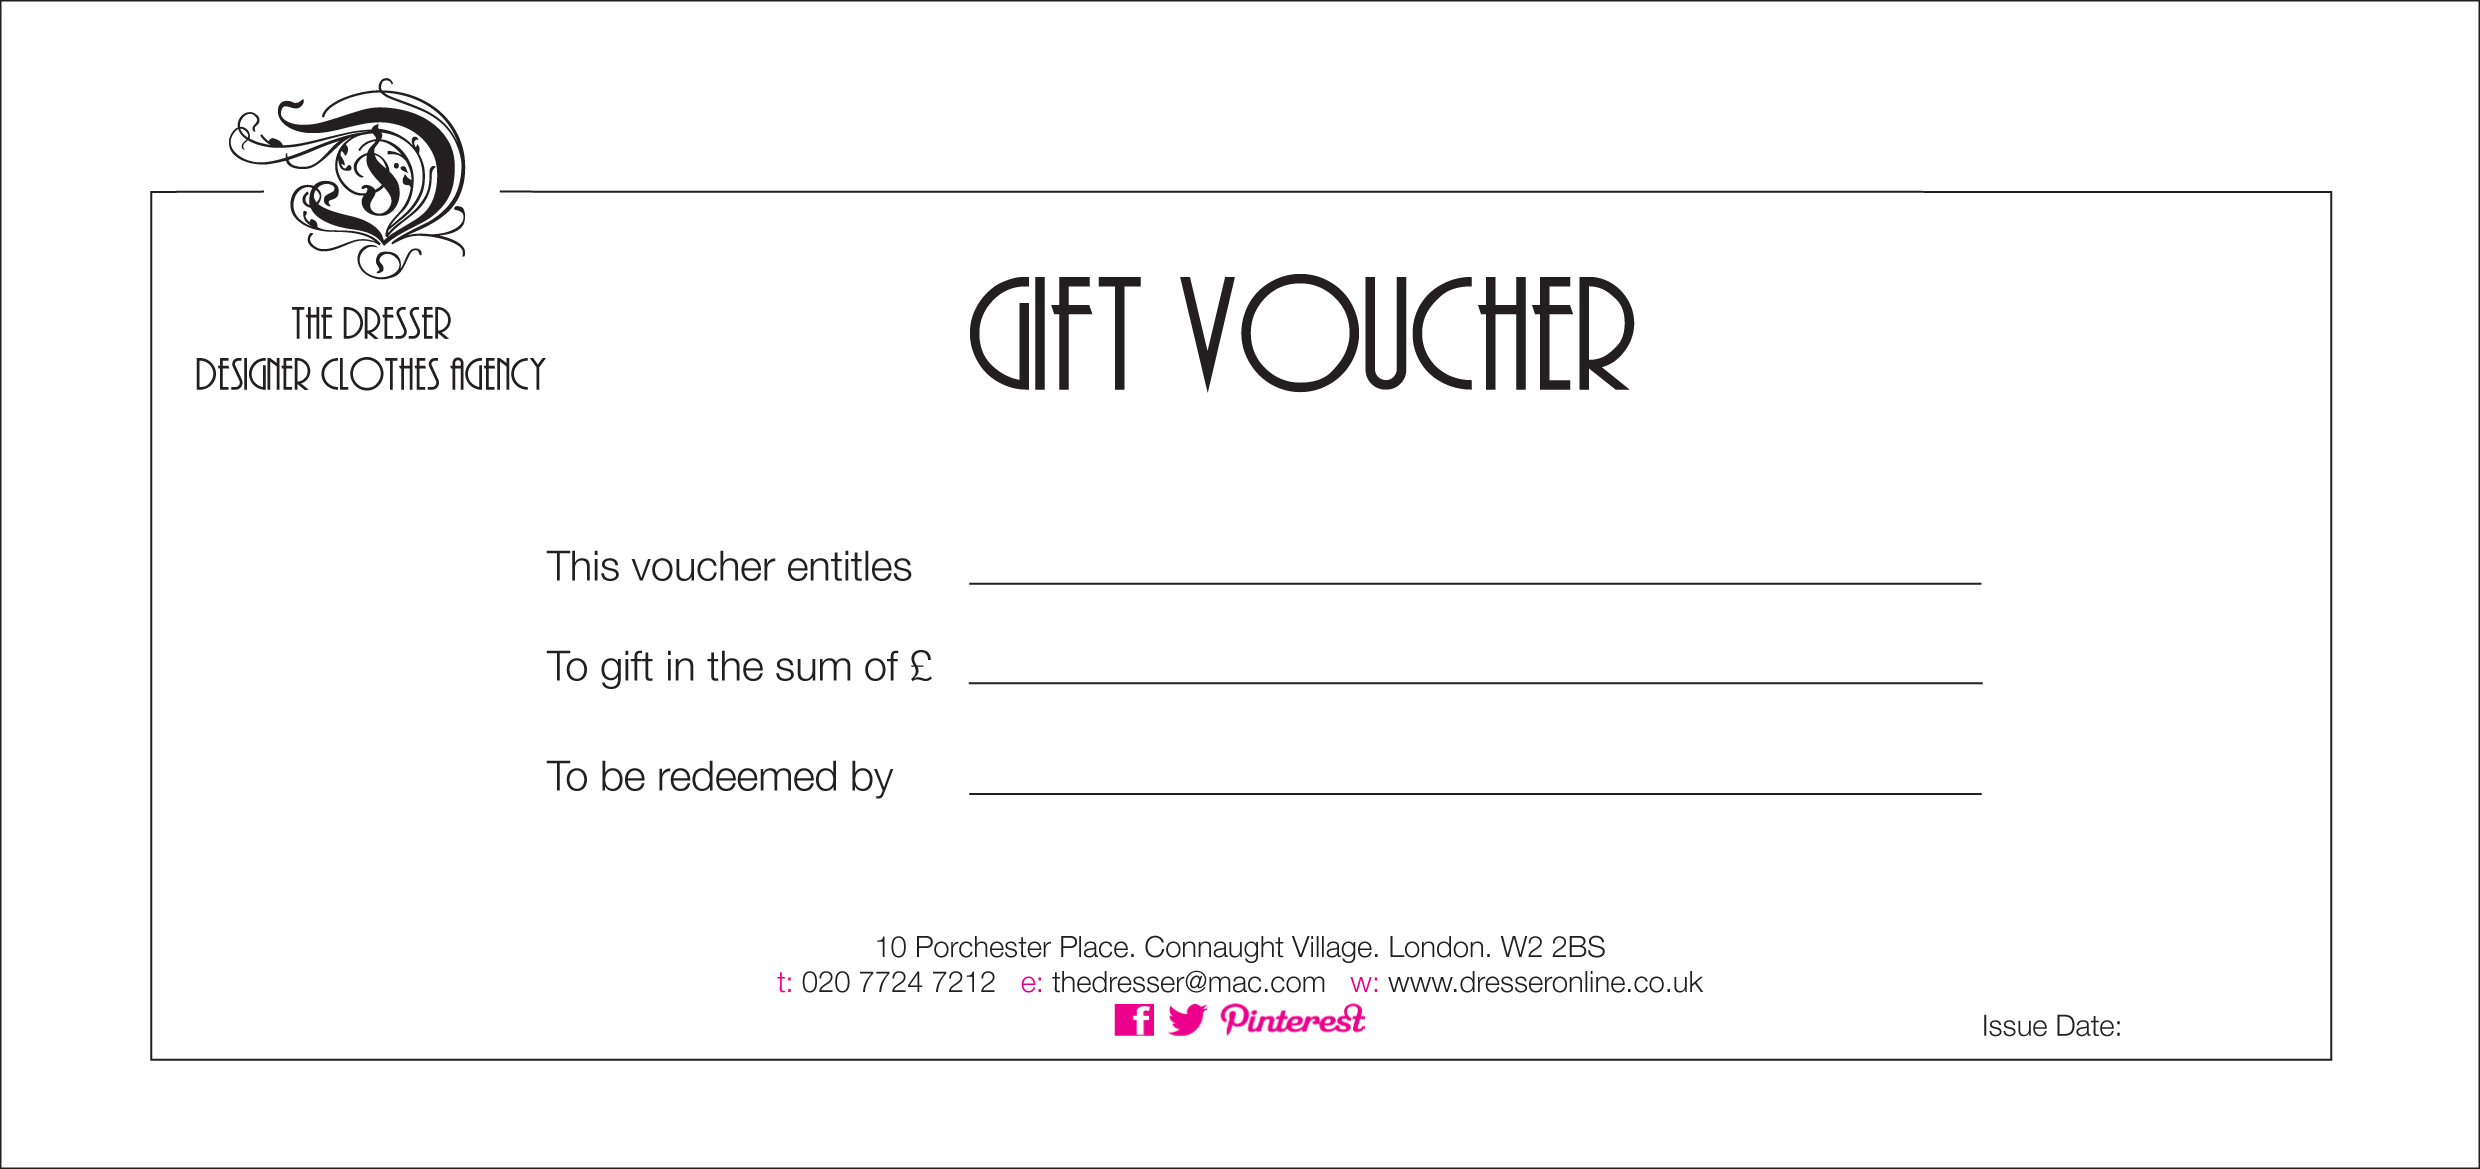 templates for gift certificates free downloads - gift voucher template word free download planner